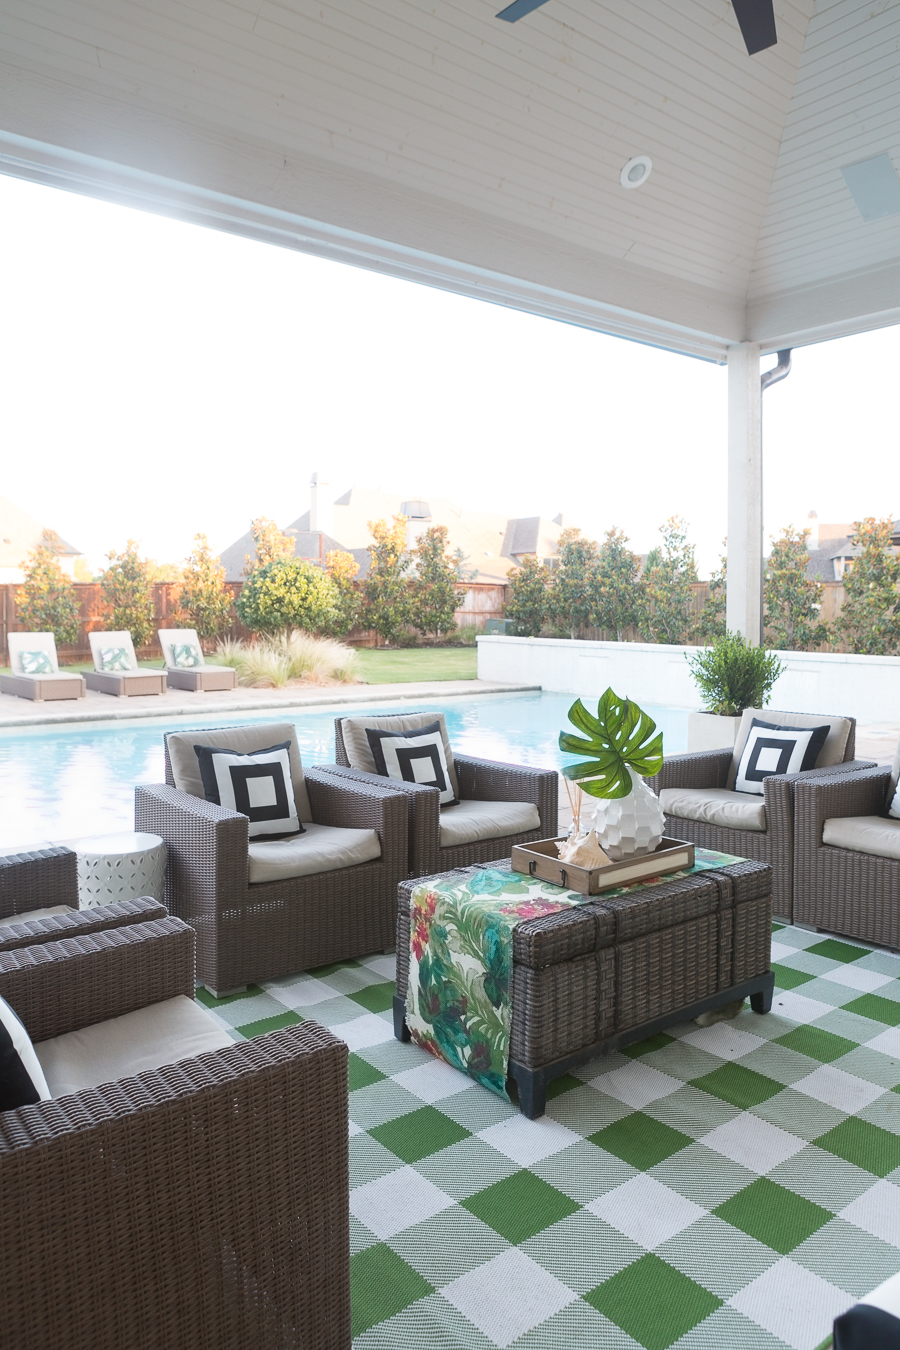 How to Design a Beautiful Pool and Outdoor Living Area buffalo check outdoor rug Target outdoor club chairs black and white outdoor pillows cement countertops outdoor living area decor ideas wicker pool lounger best affordable pool loungers